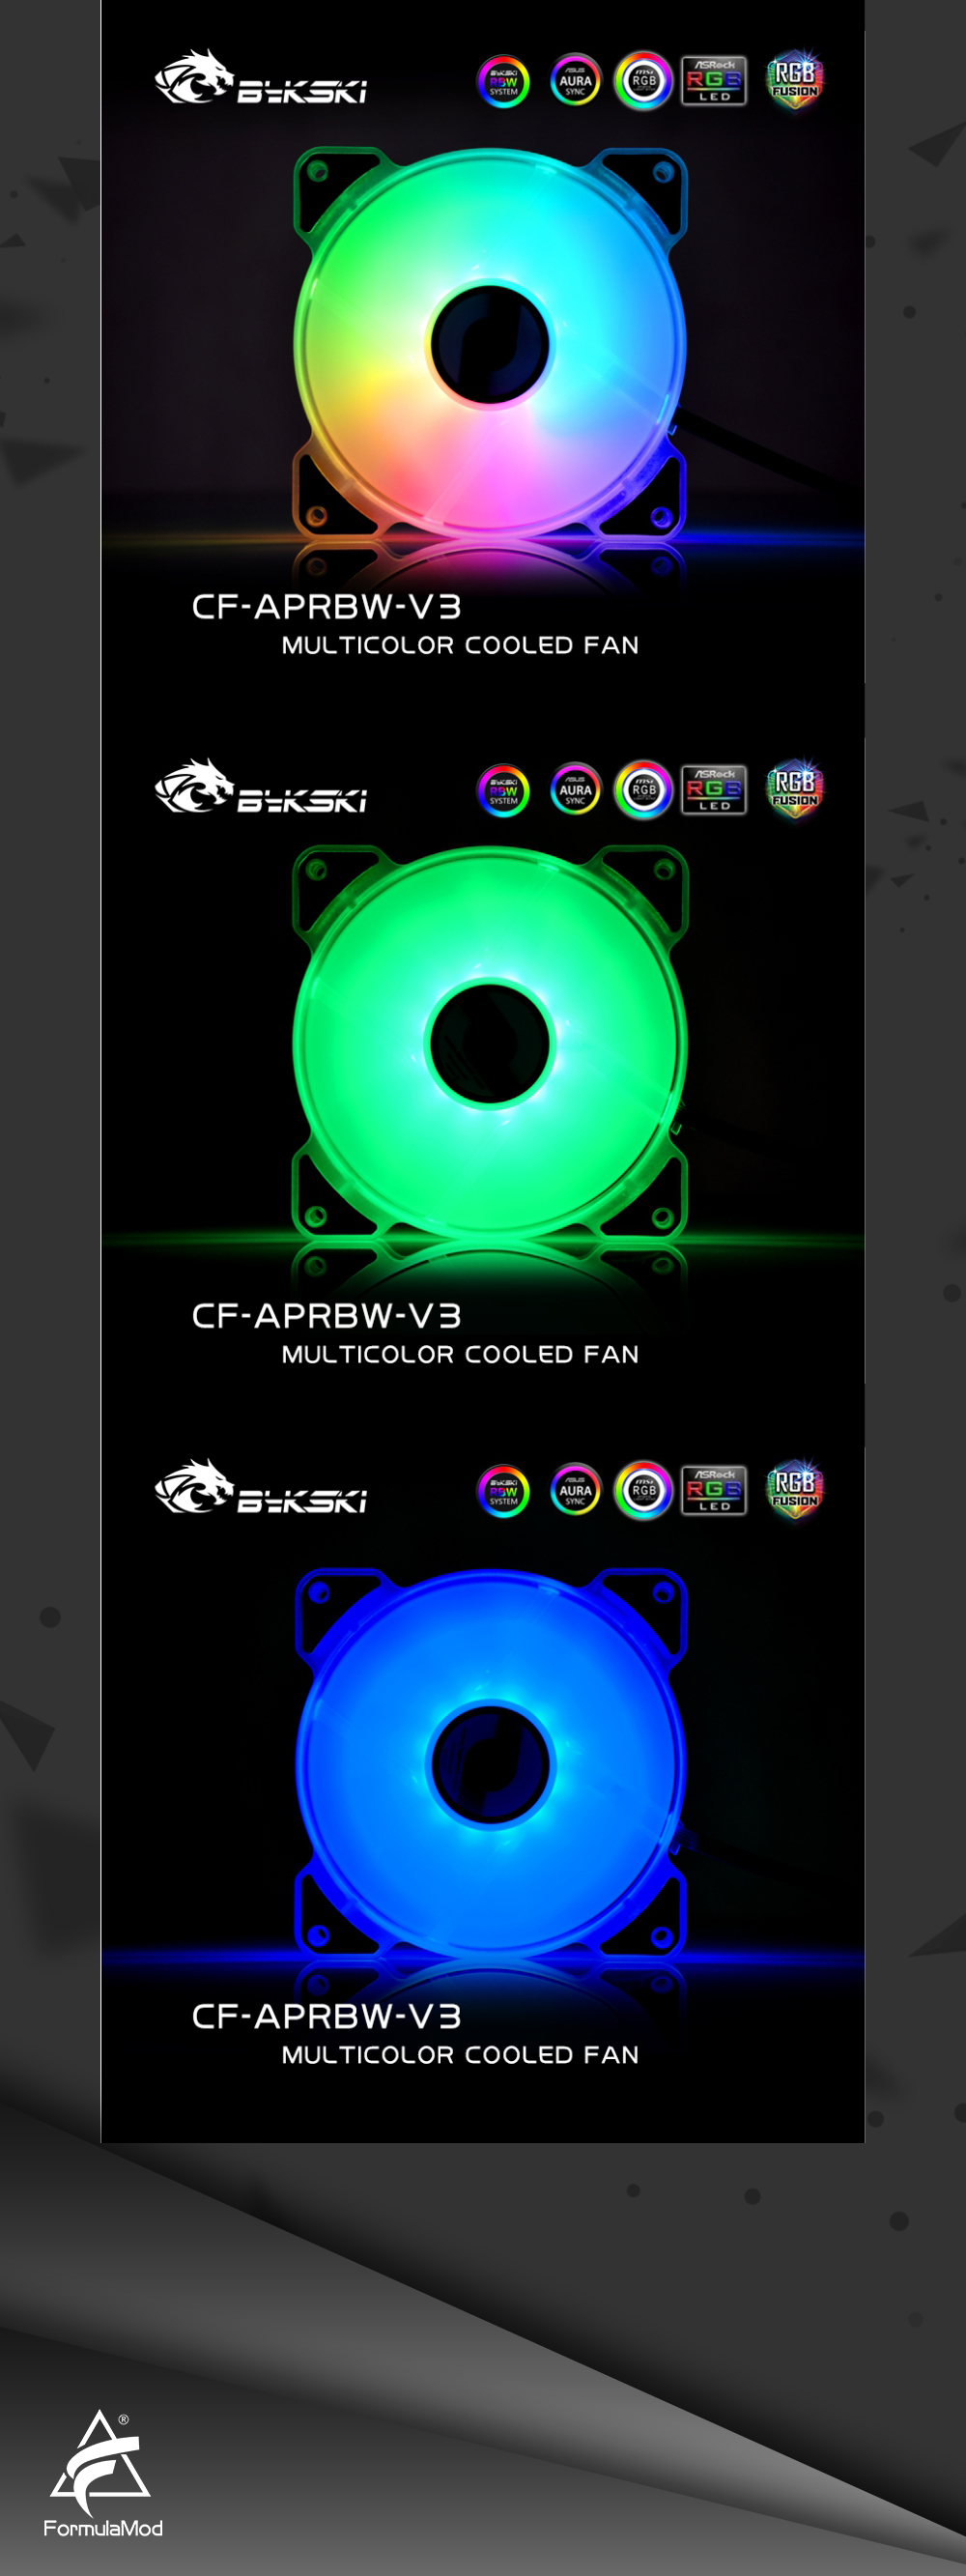 Bykski ARGB 5v Computer Fan 120mm Mute Water Cooling Fan For PC Case 120/240/480 Radiator Colorful Cooler For PC Cooling CF-APRBW-V3